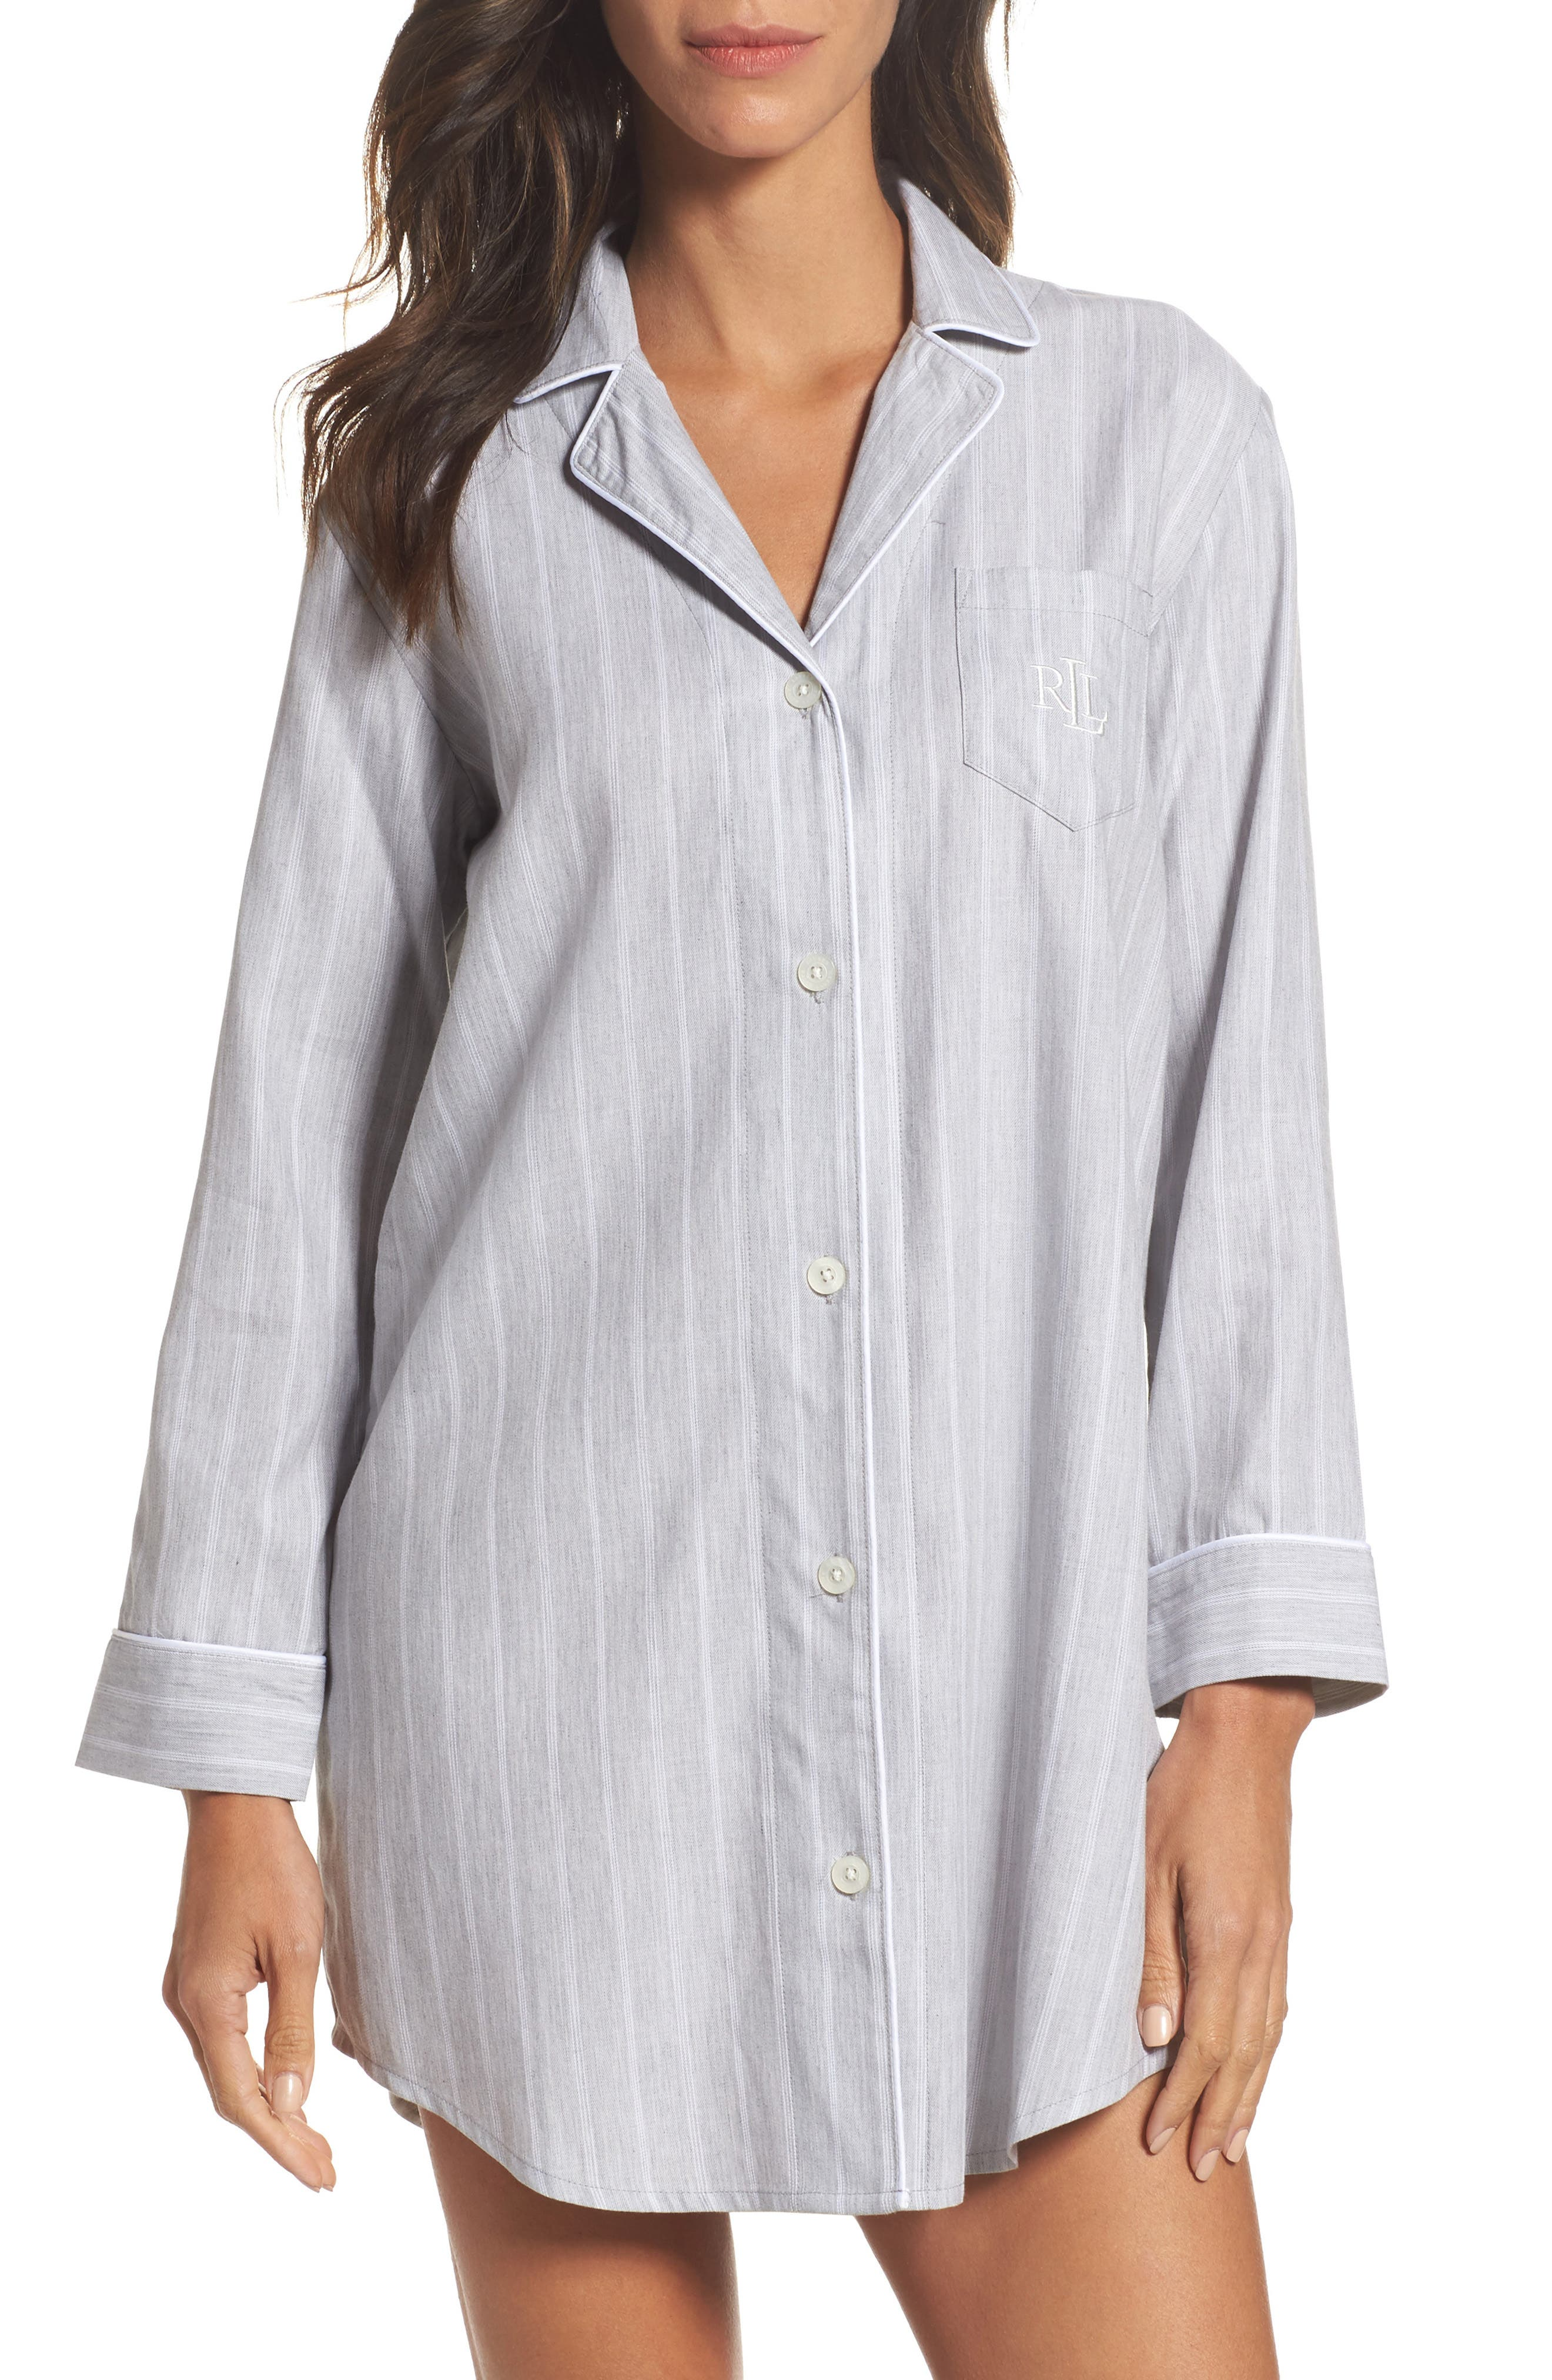 Notch Collar Sleep Shirt,                         Main,                         color, 060